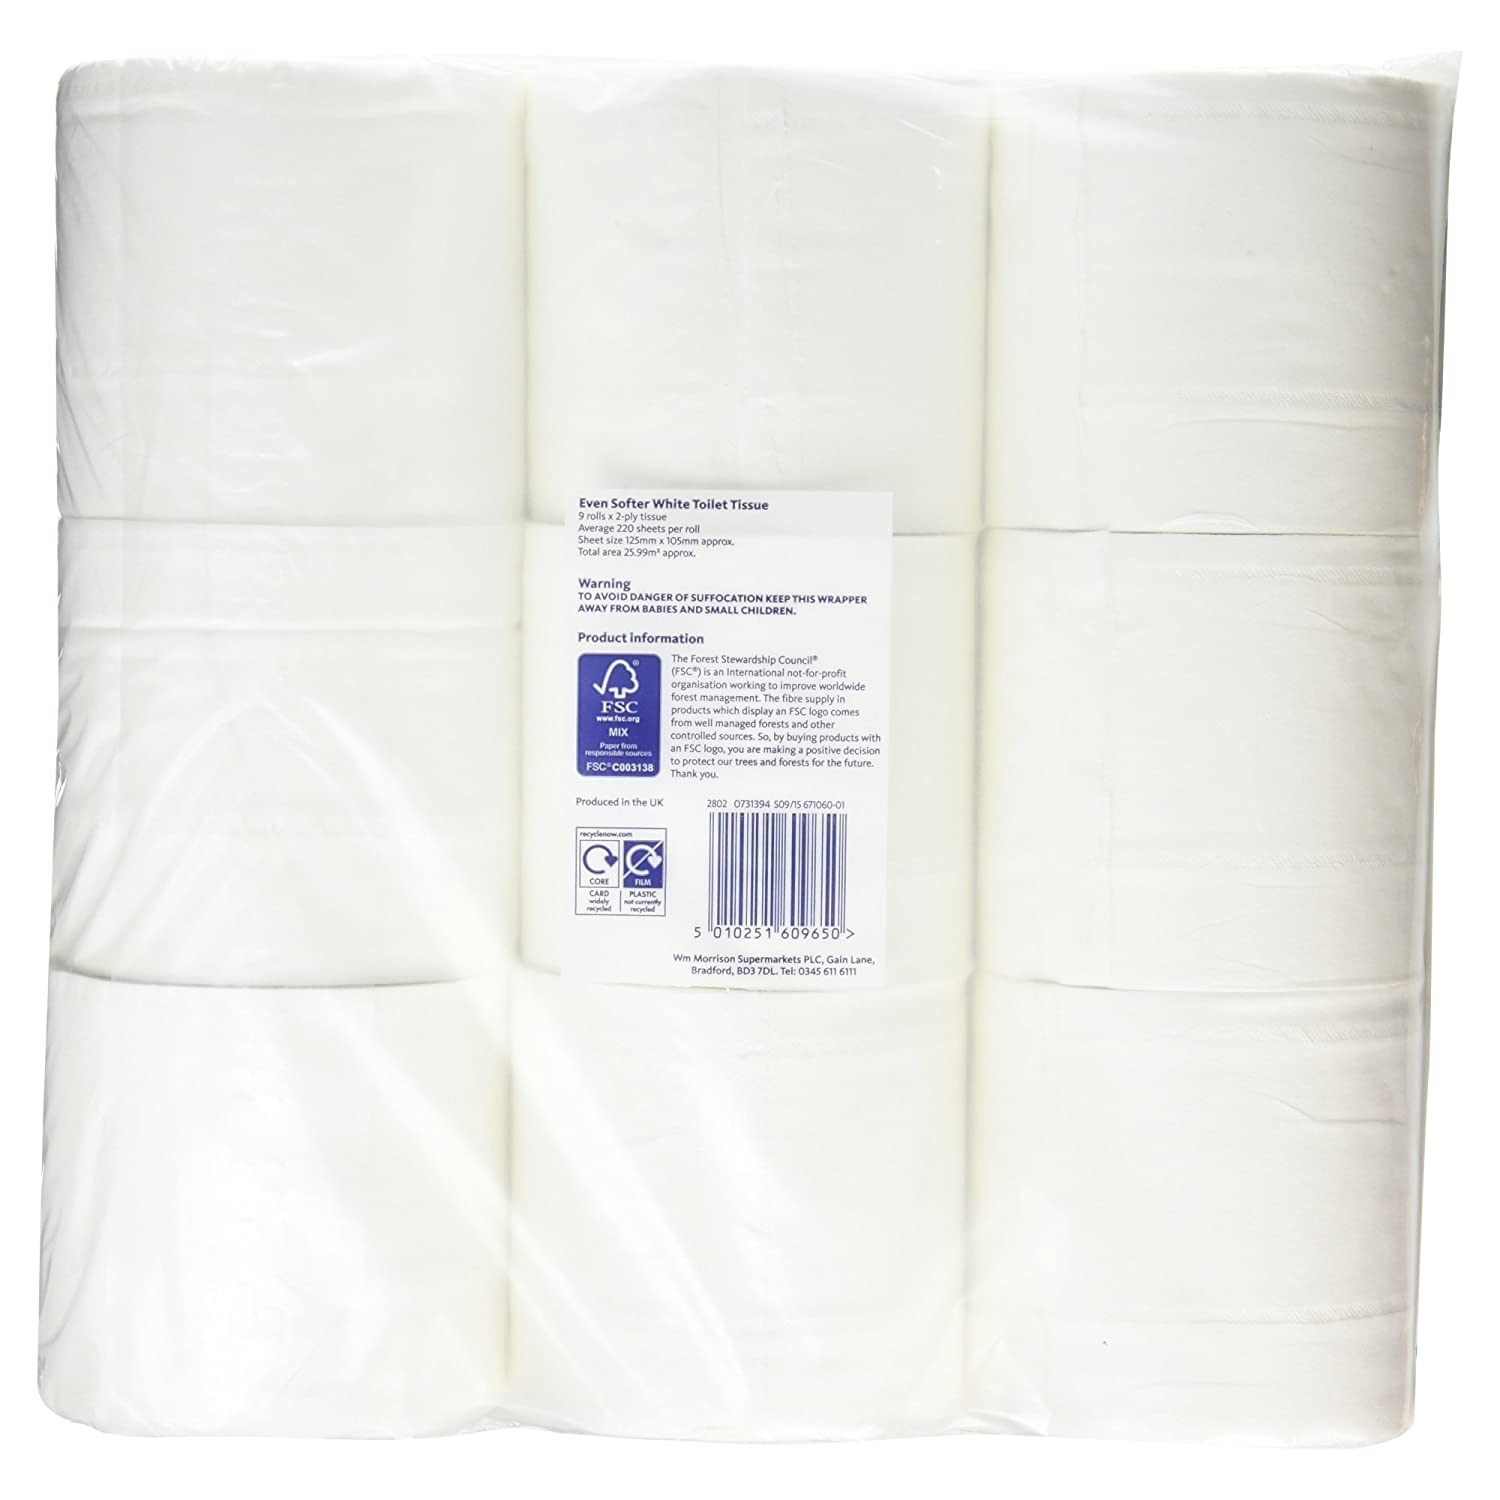 Morrisons Even Softer White Toilet Tissue 9 Rolls Amazoncouk Prime Pantry